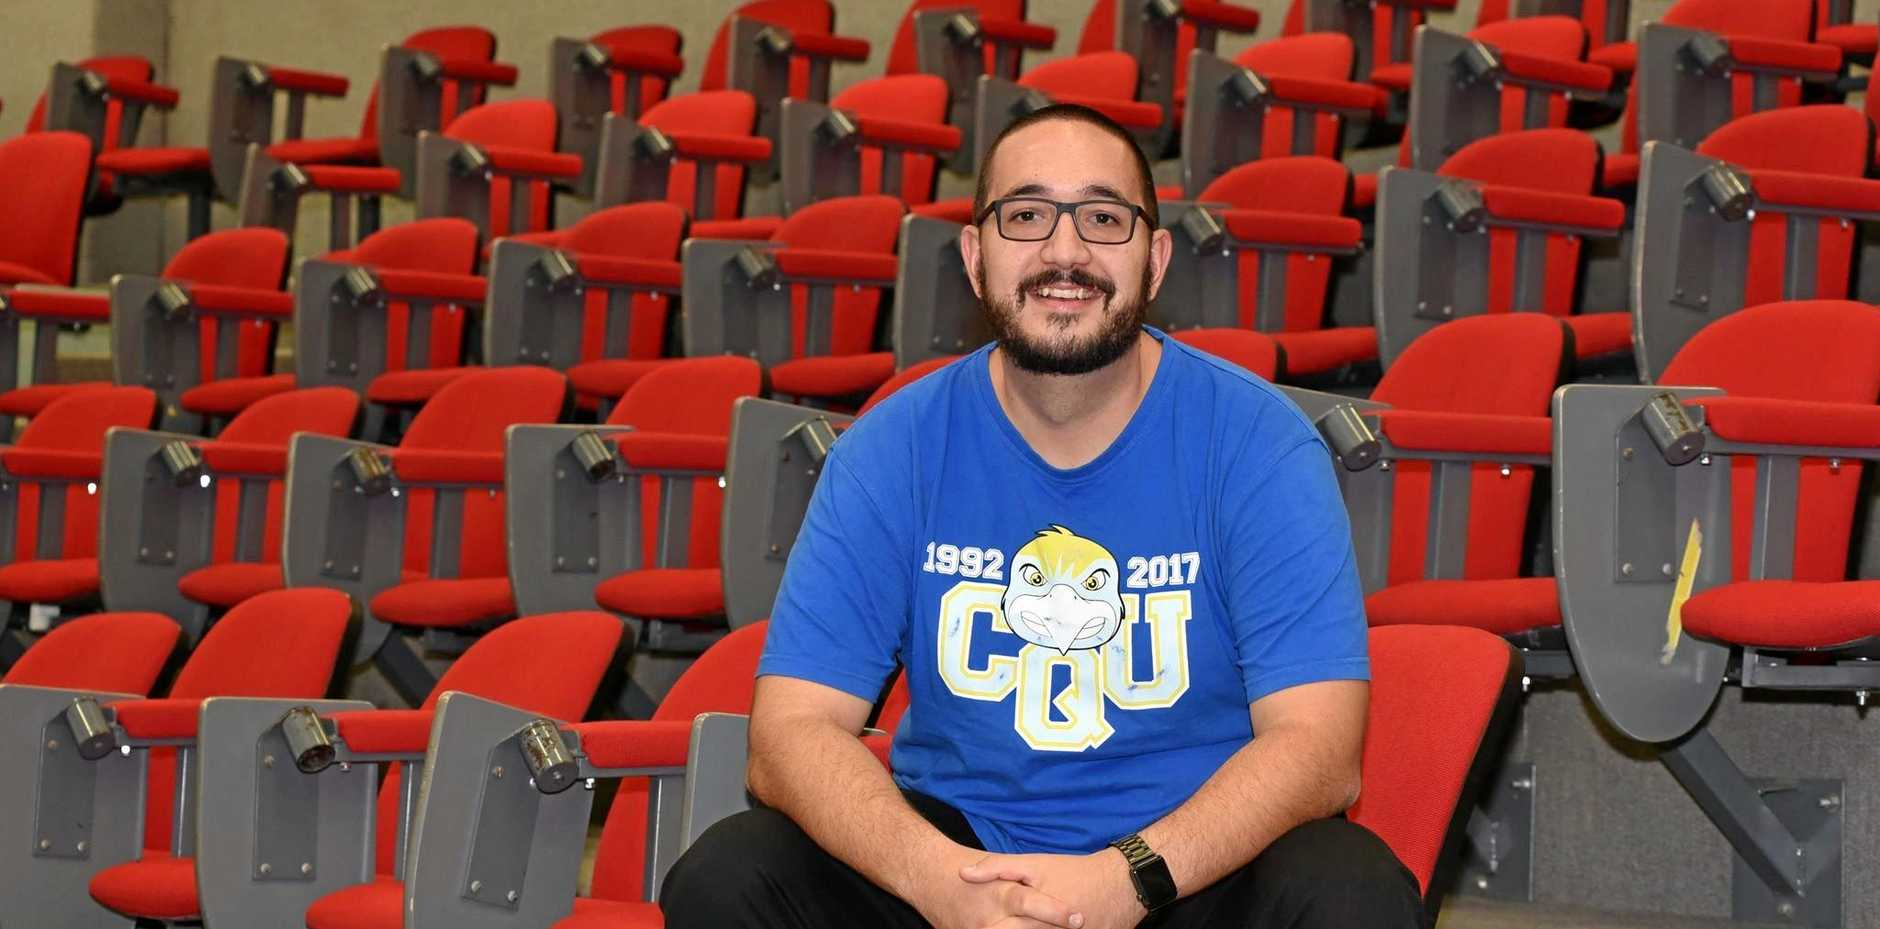 Luke Sondergeld was nominated by the staff at CQUniversity for the Vocational Student of the Year award who taught him during his Diploma of Nursing